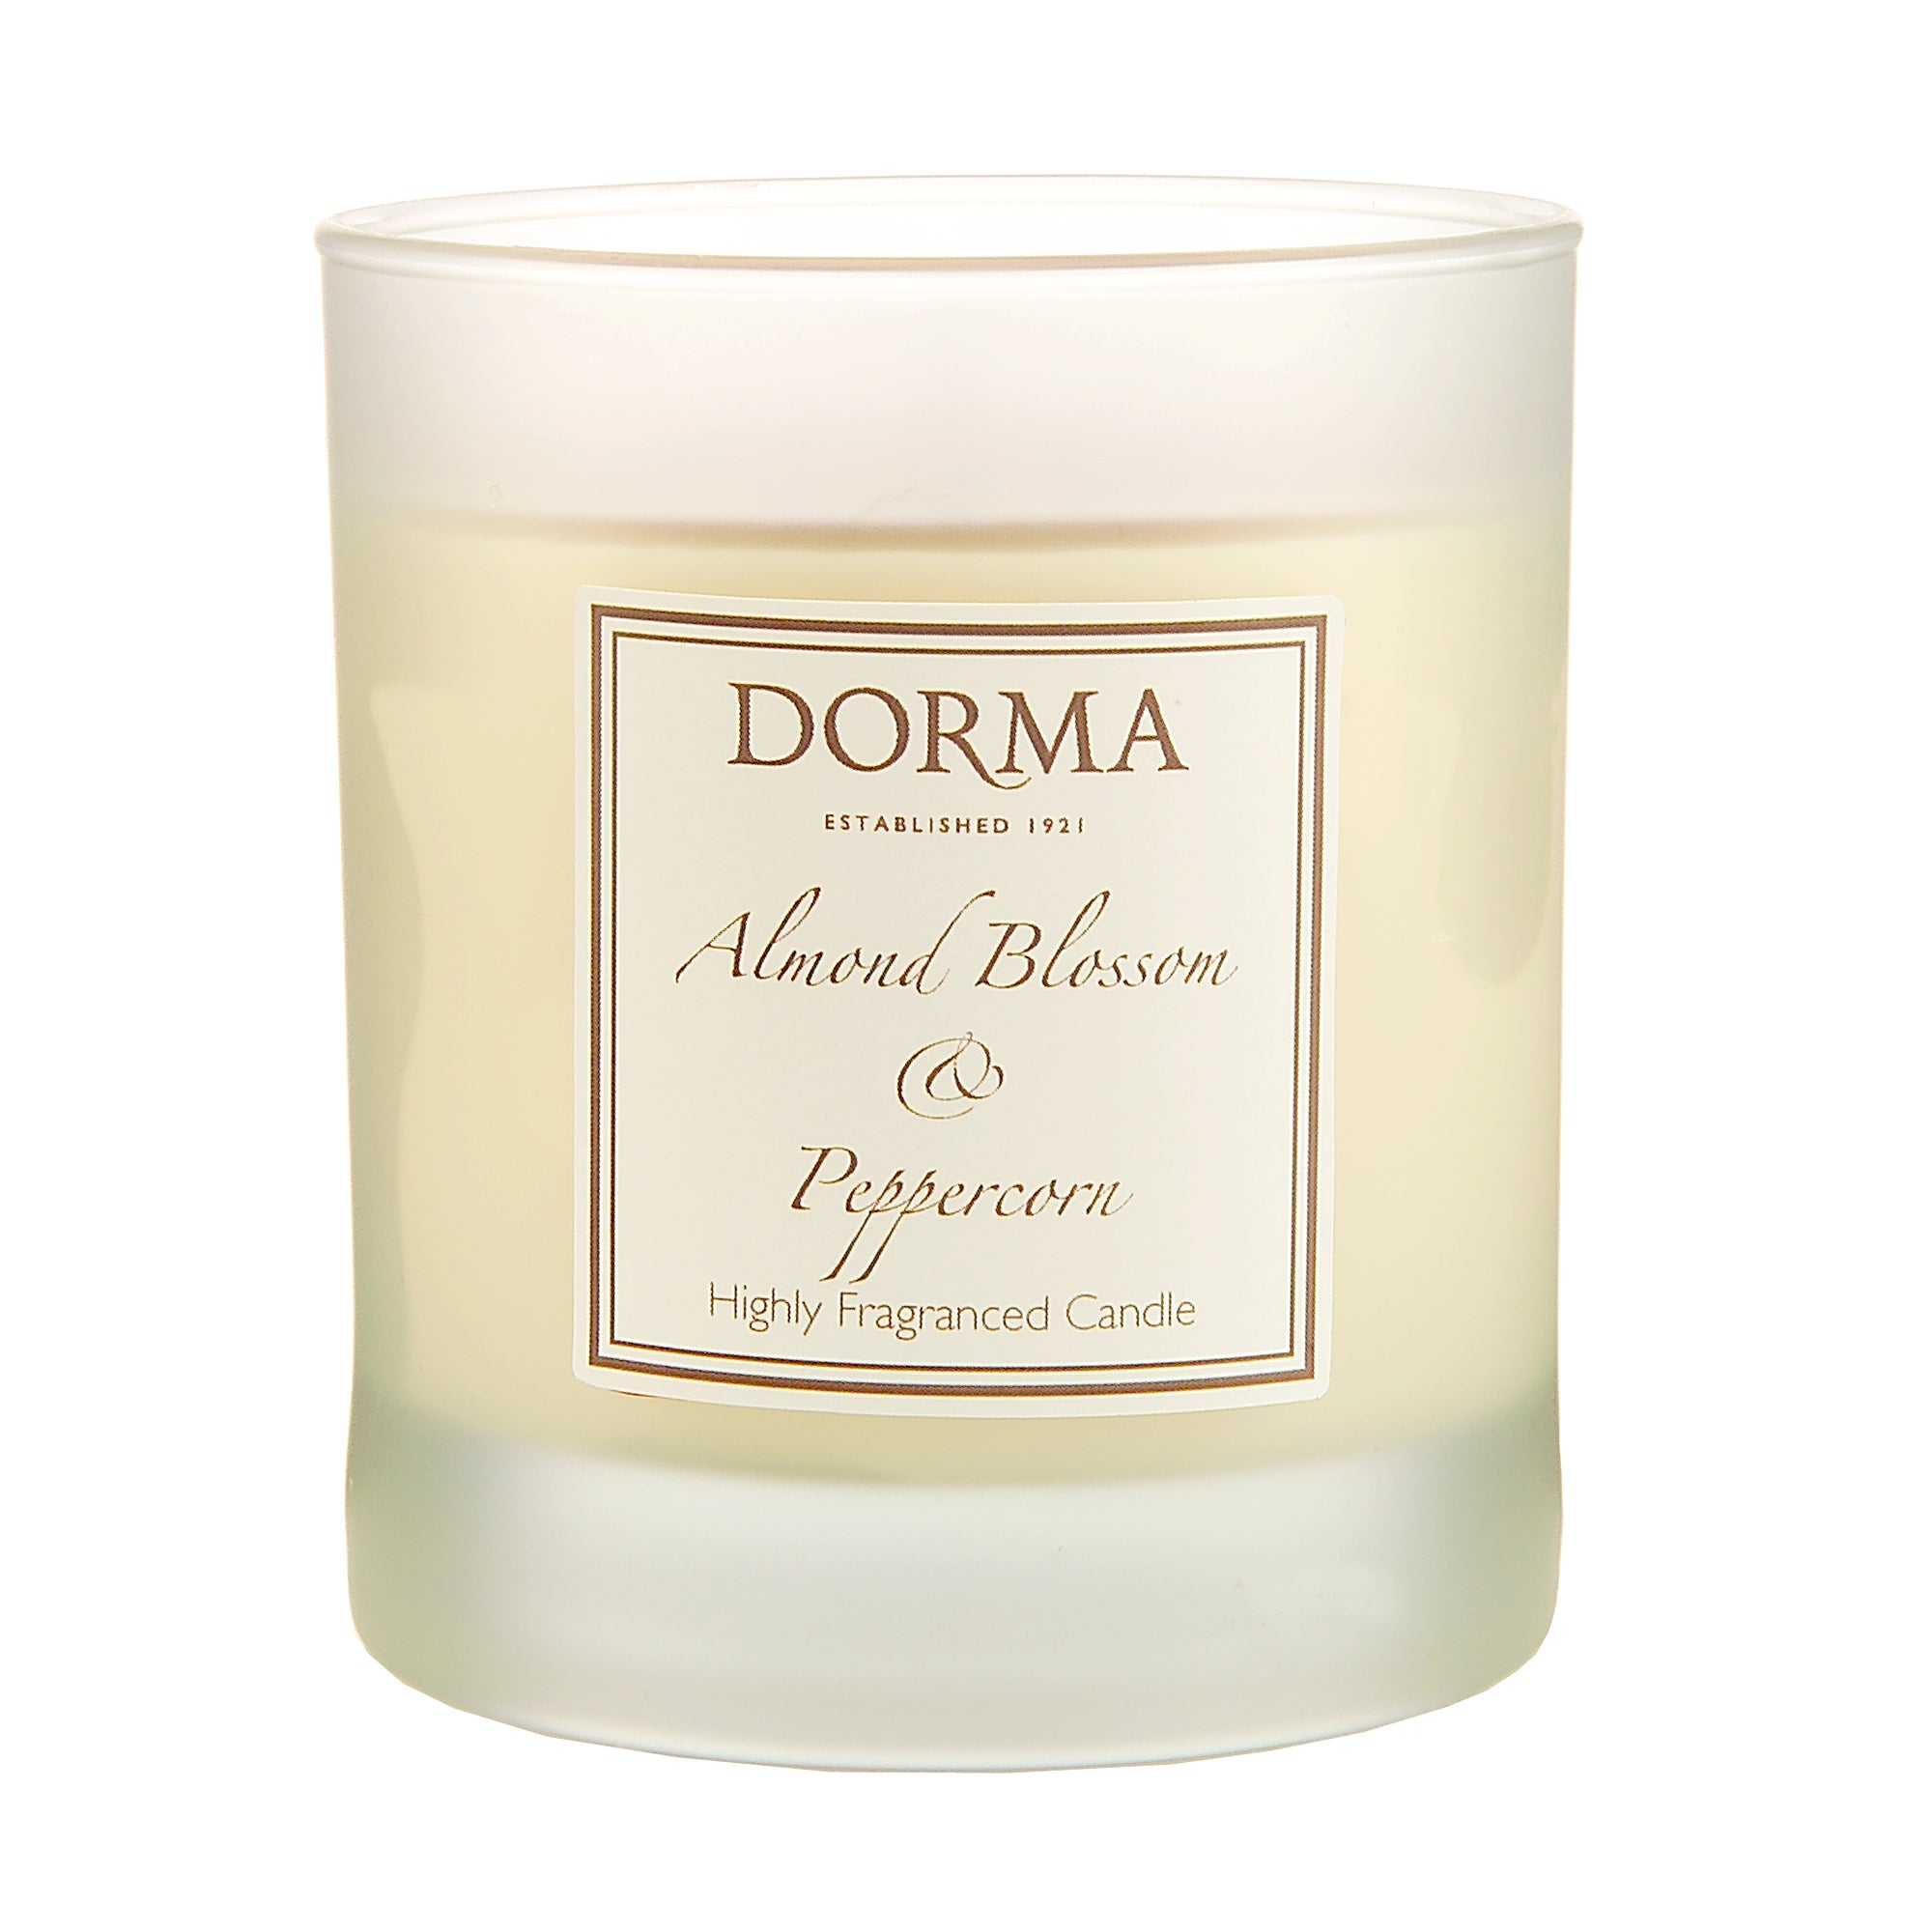 Dorma Almond Blossom and Peppercorn Wax Filled Glass Candle